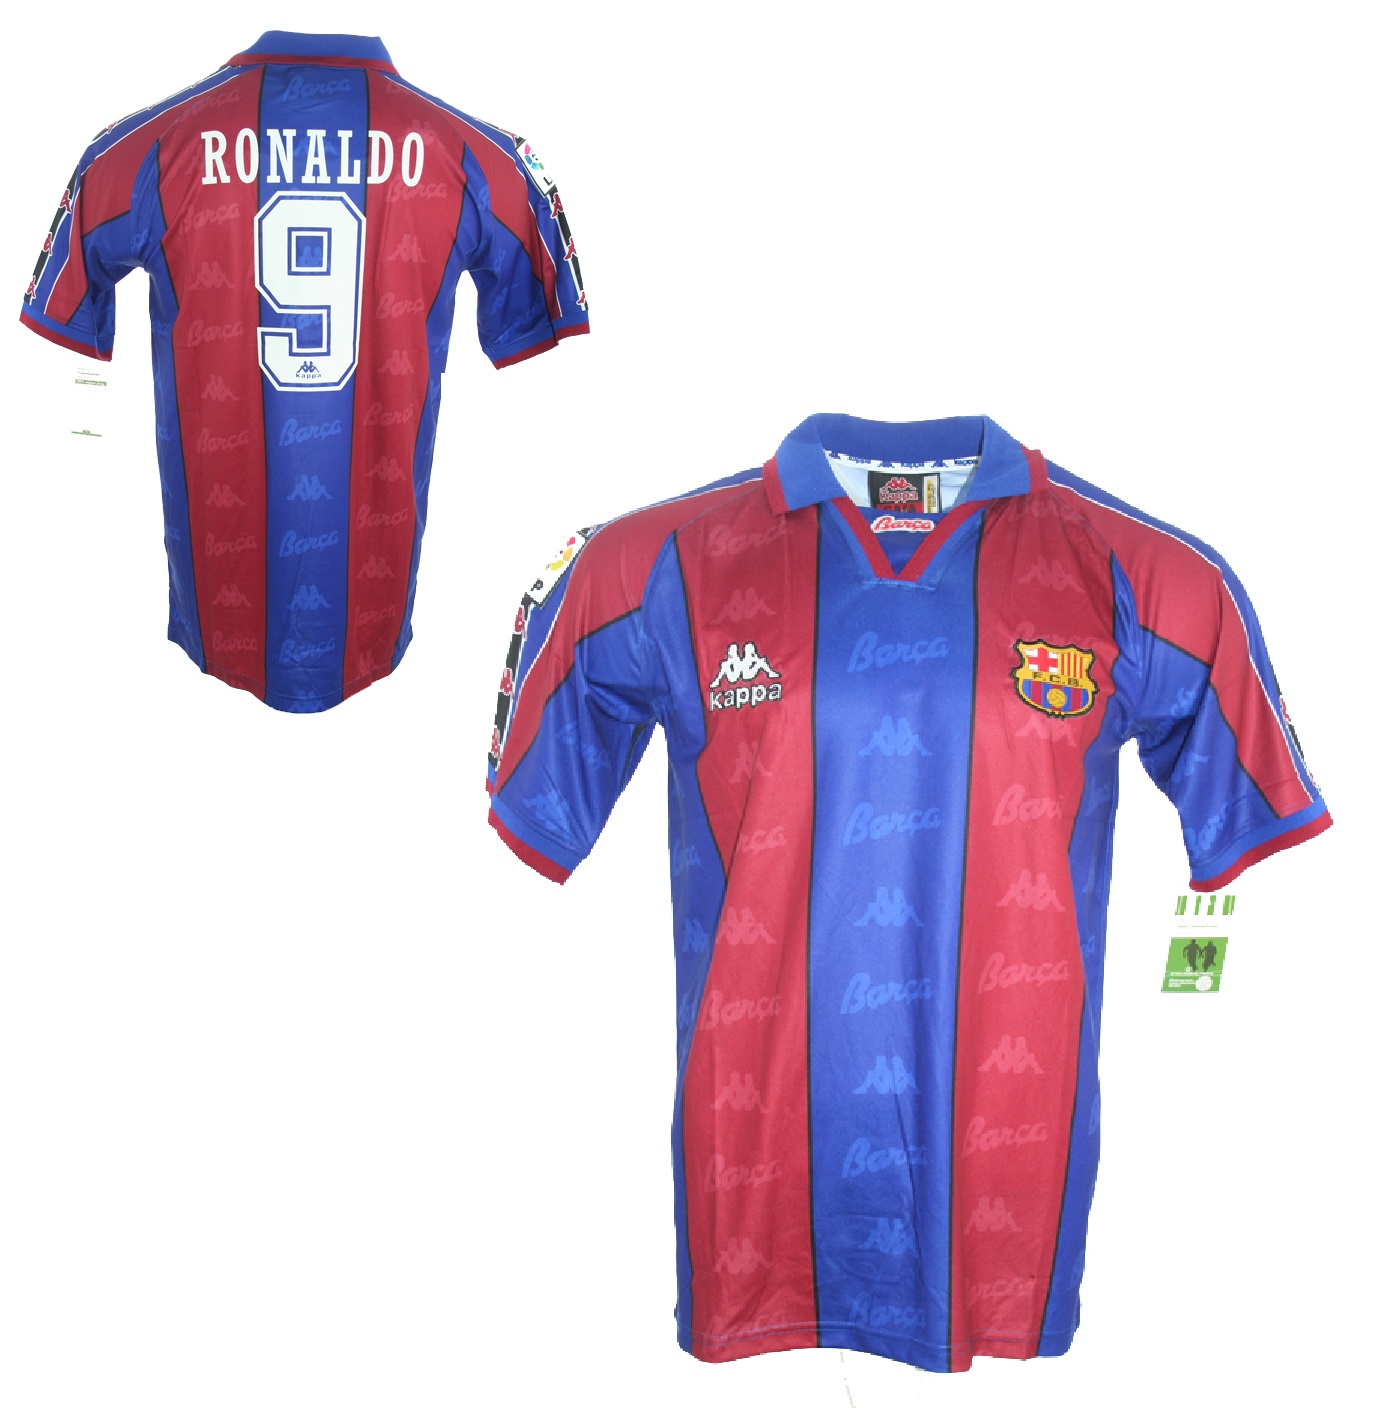 Kappa FC Barcelona jersey 9 Ronaldo 1995 96 match issued men s M or XL 81d1fe72b1670